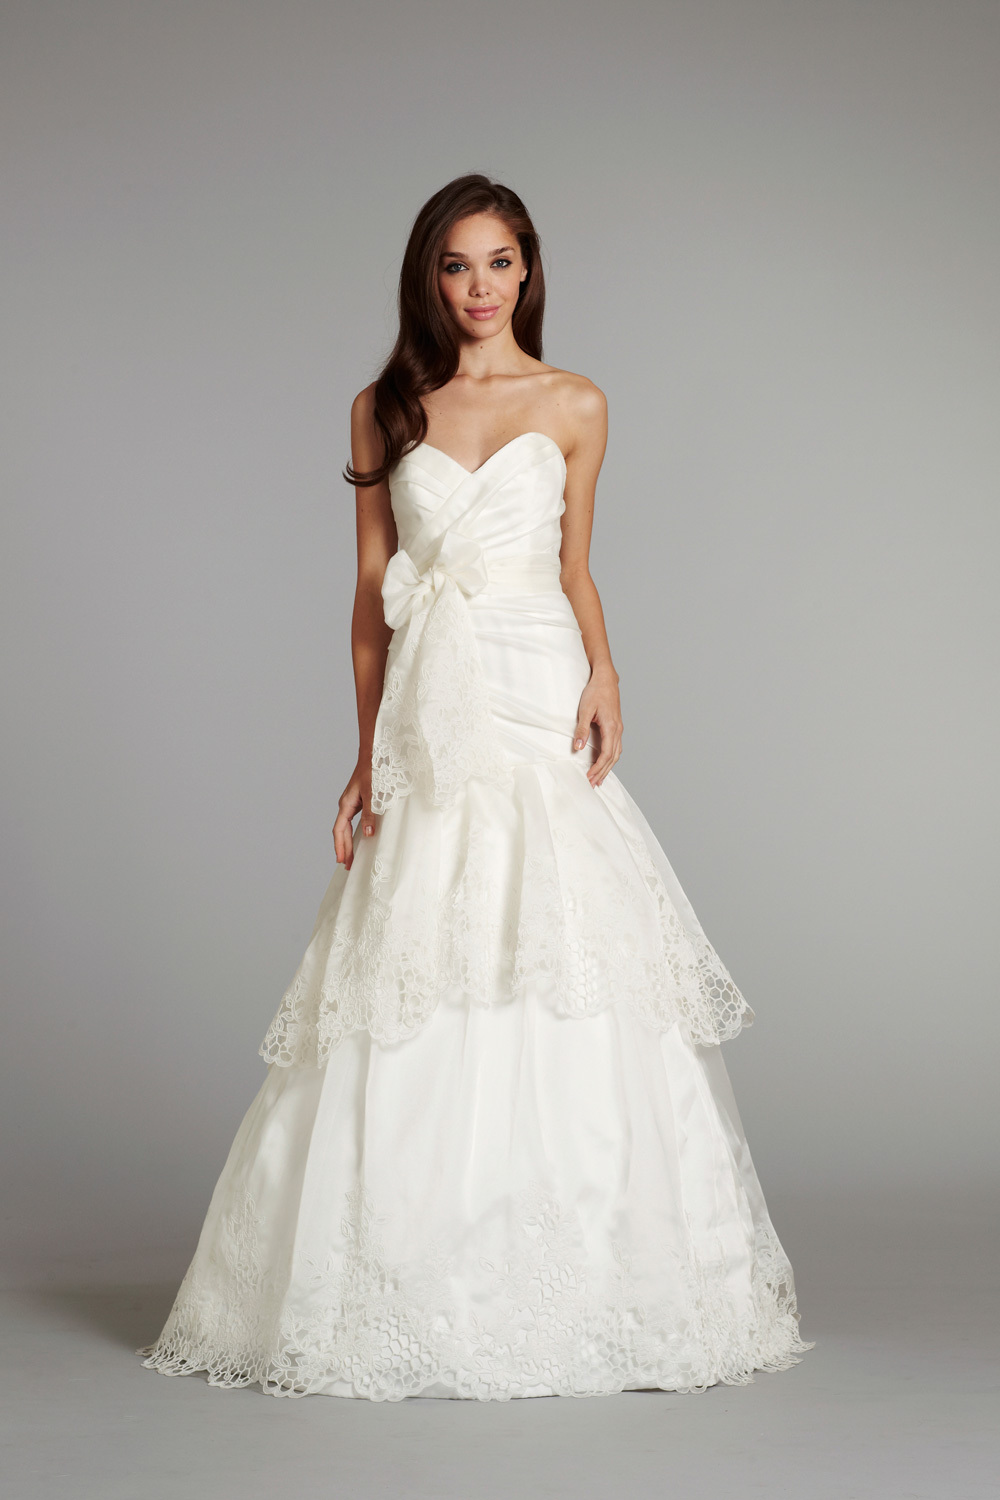 Bridal-gown-wedding-dress-jlm-hayley-paige-fall-2012-savannah-front.full